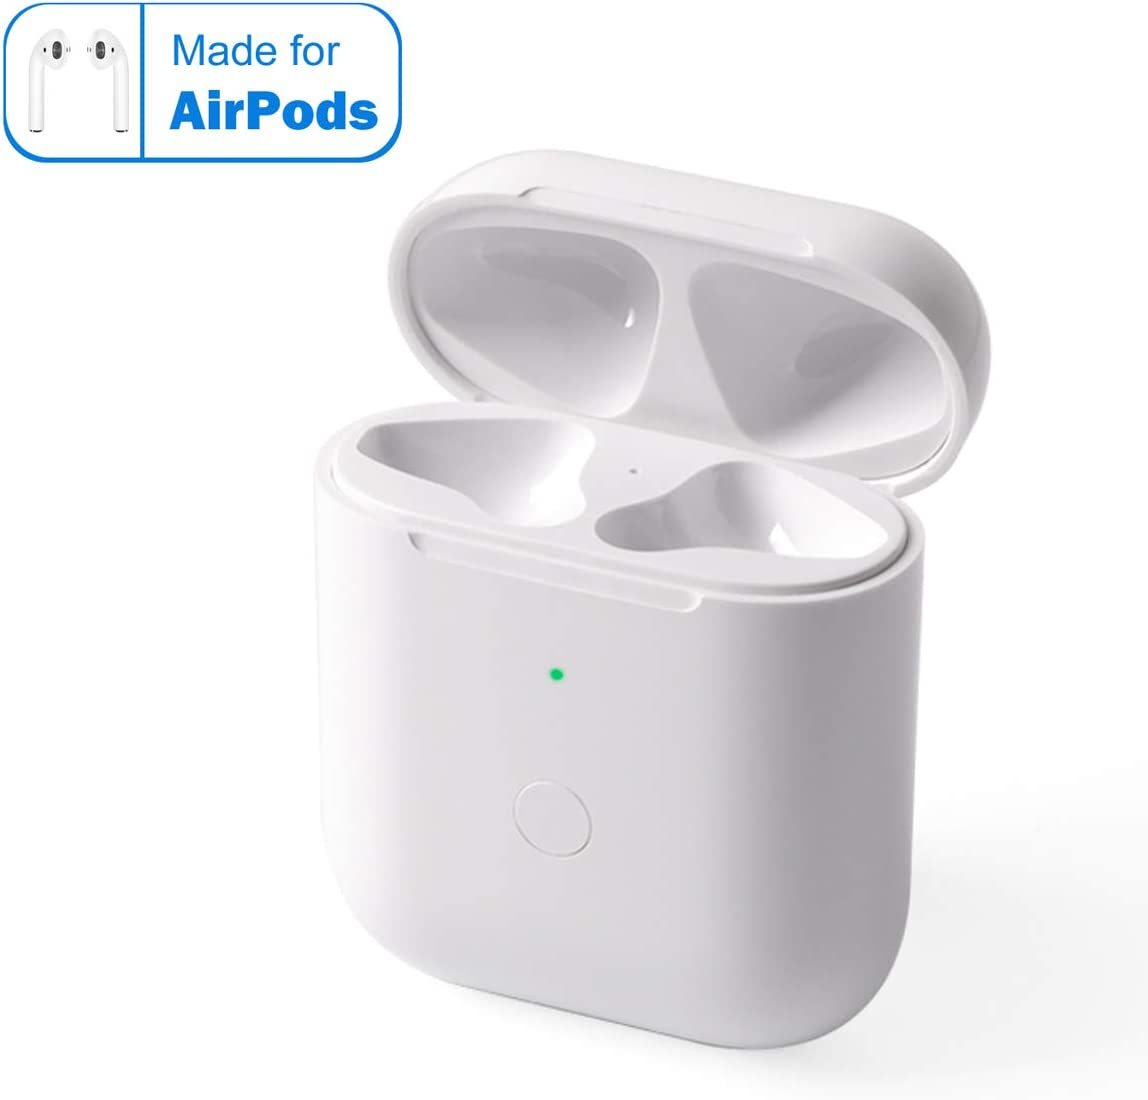 BLEAKTEIR Airpods Chargring Case Airpod Charger Compatible with Airpods 1/2 QI Wireless Charging Charger Case Replacement for Air Pods Charger Case with Bluetooth Sync Button(No Earbuds Included)